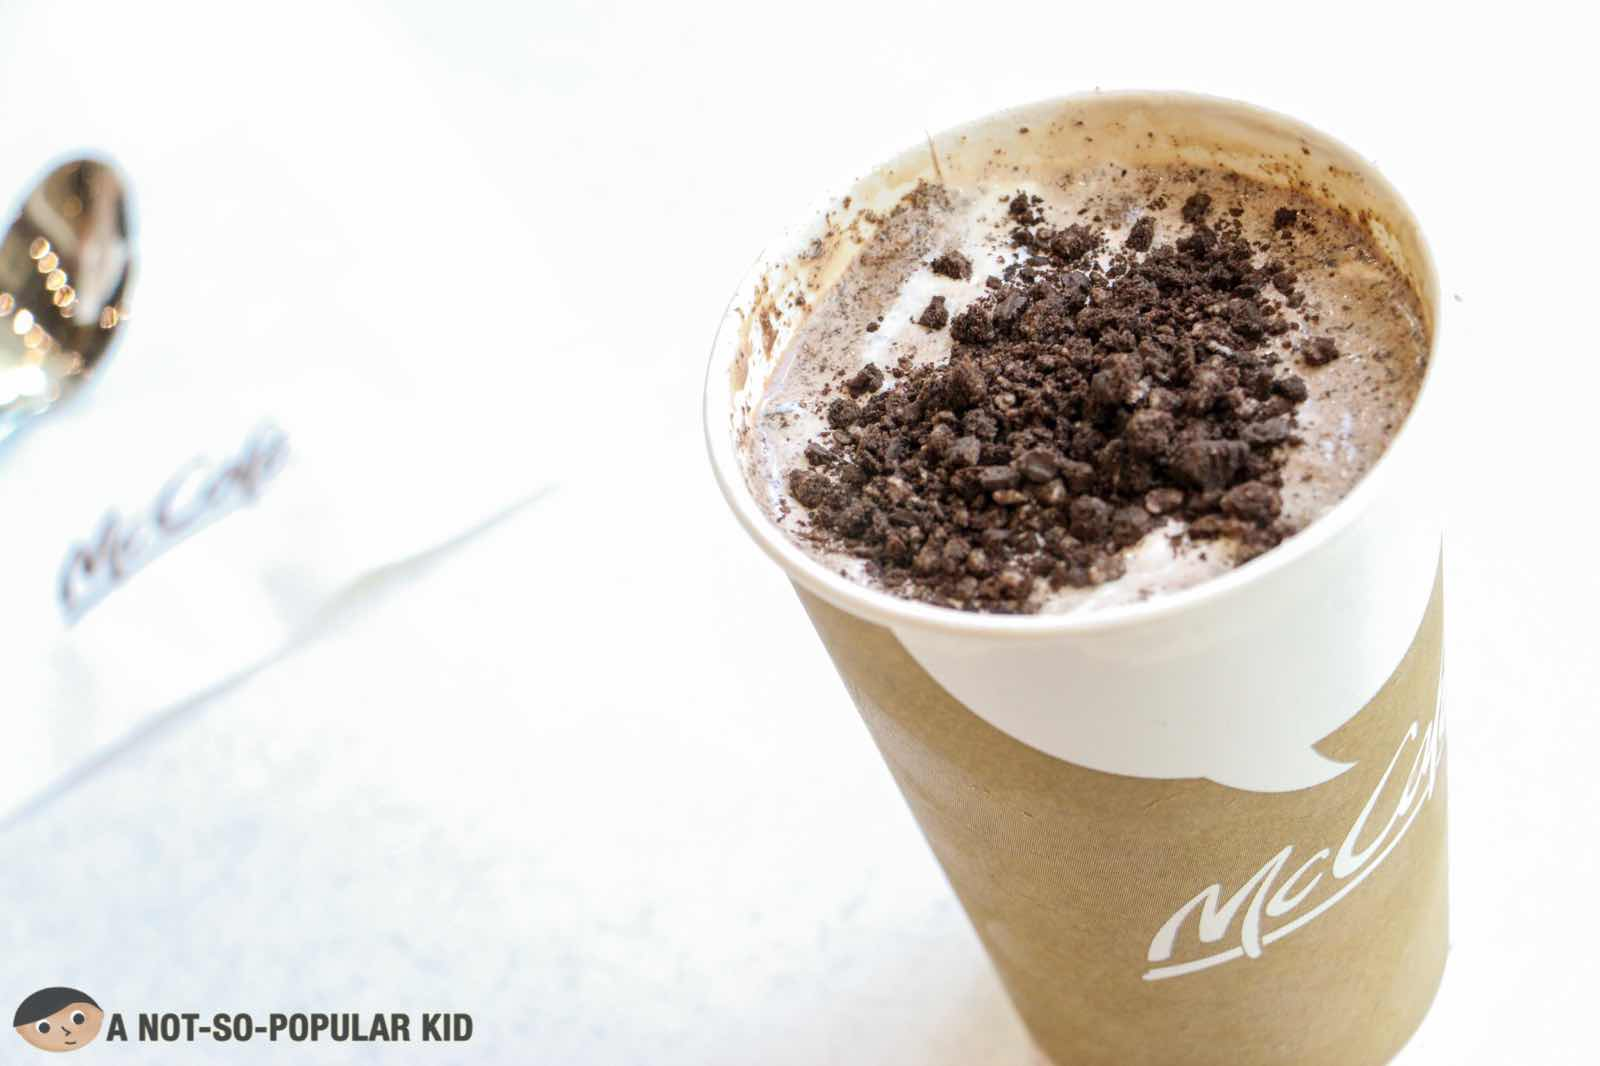 McCafe in Maybank Theater, BGC - a paradise for comfort!